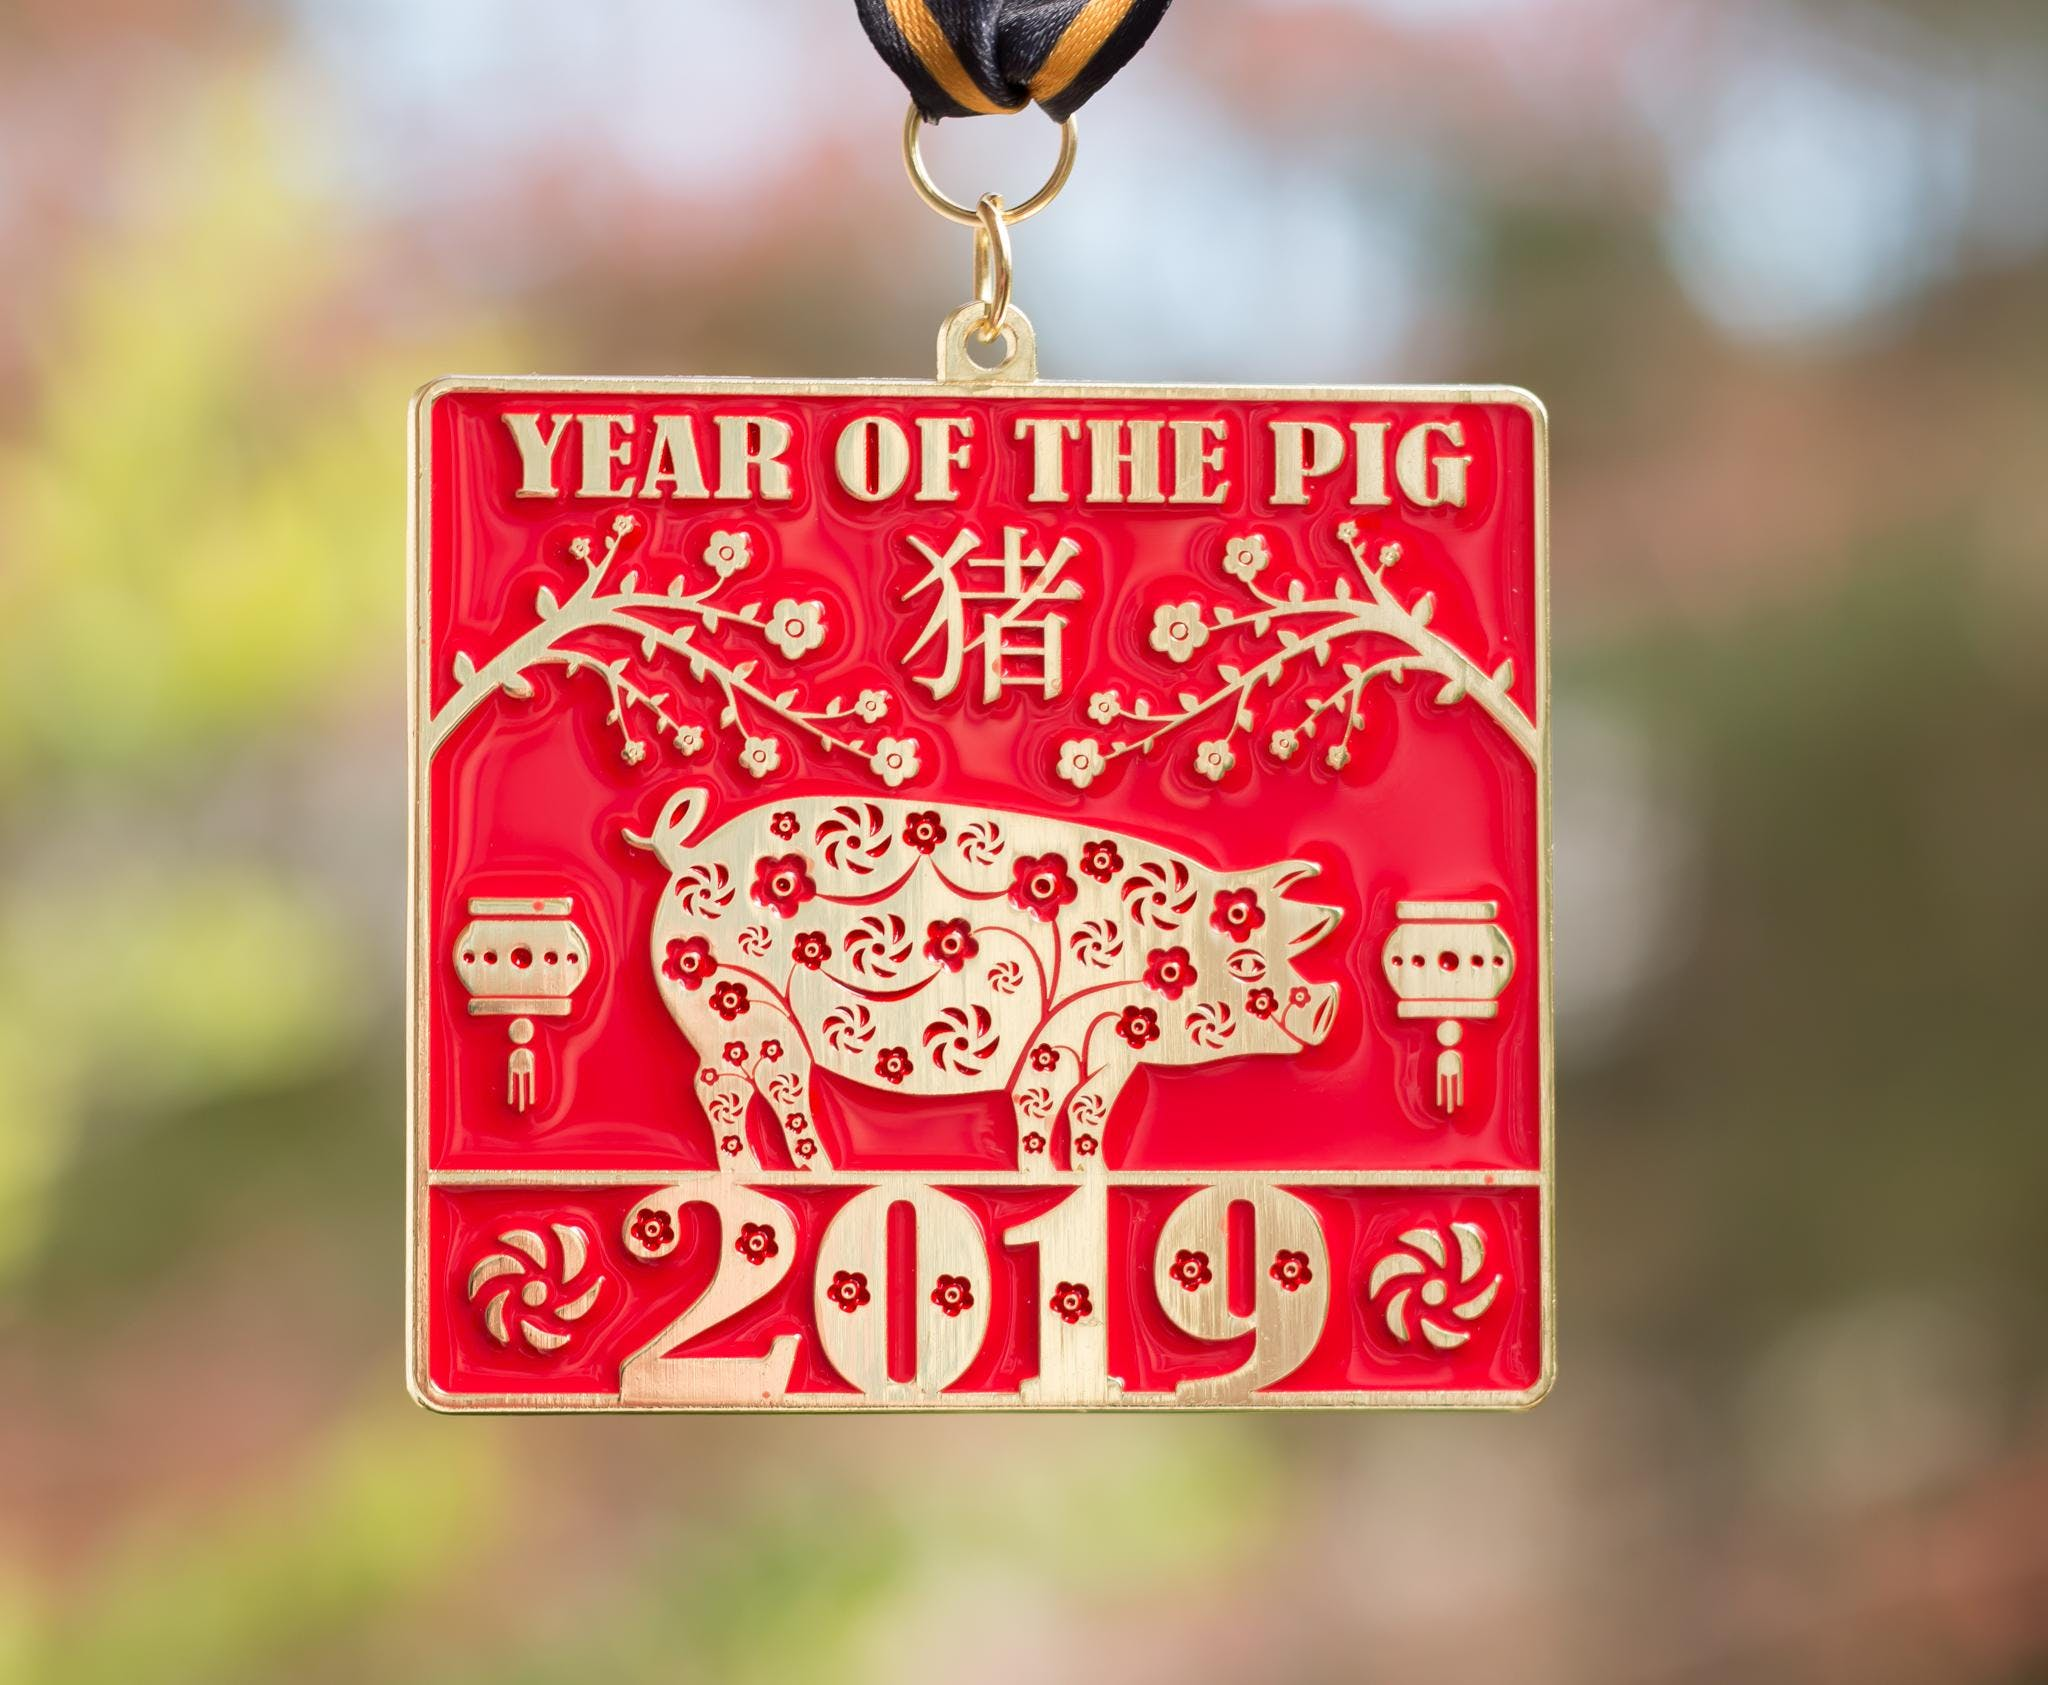 New Year Running and Walking Challenge-Year of the Pig - Sacramento